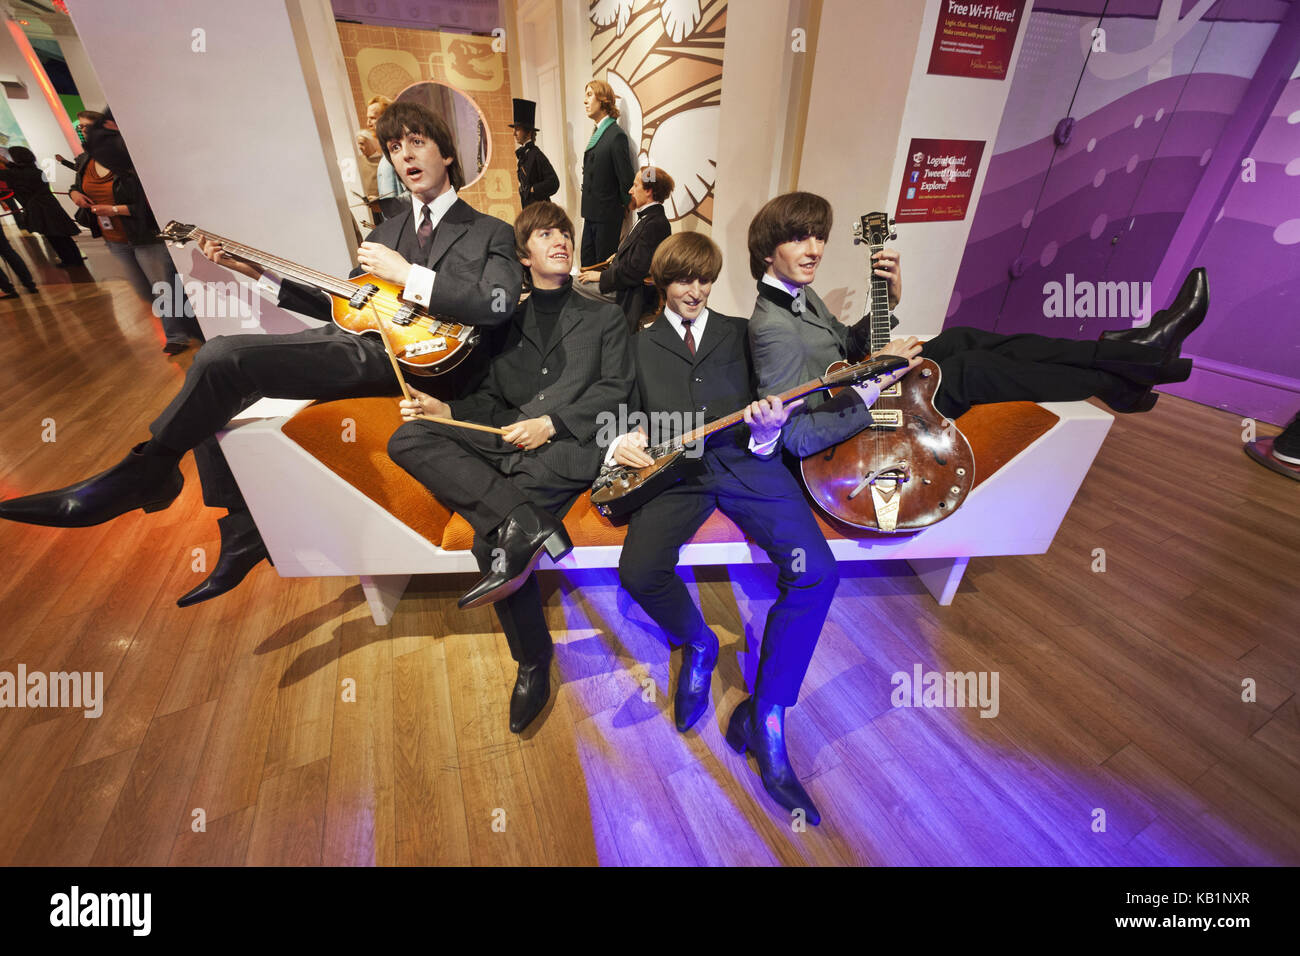 England, London, Madame Tussauds, wax figures, the Beatles, - Stock Image